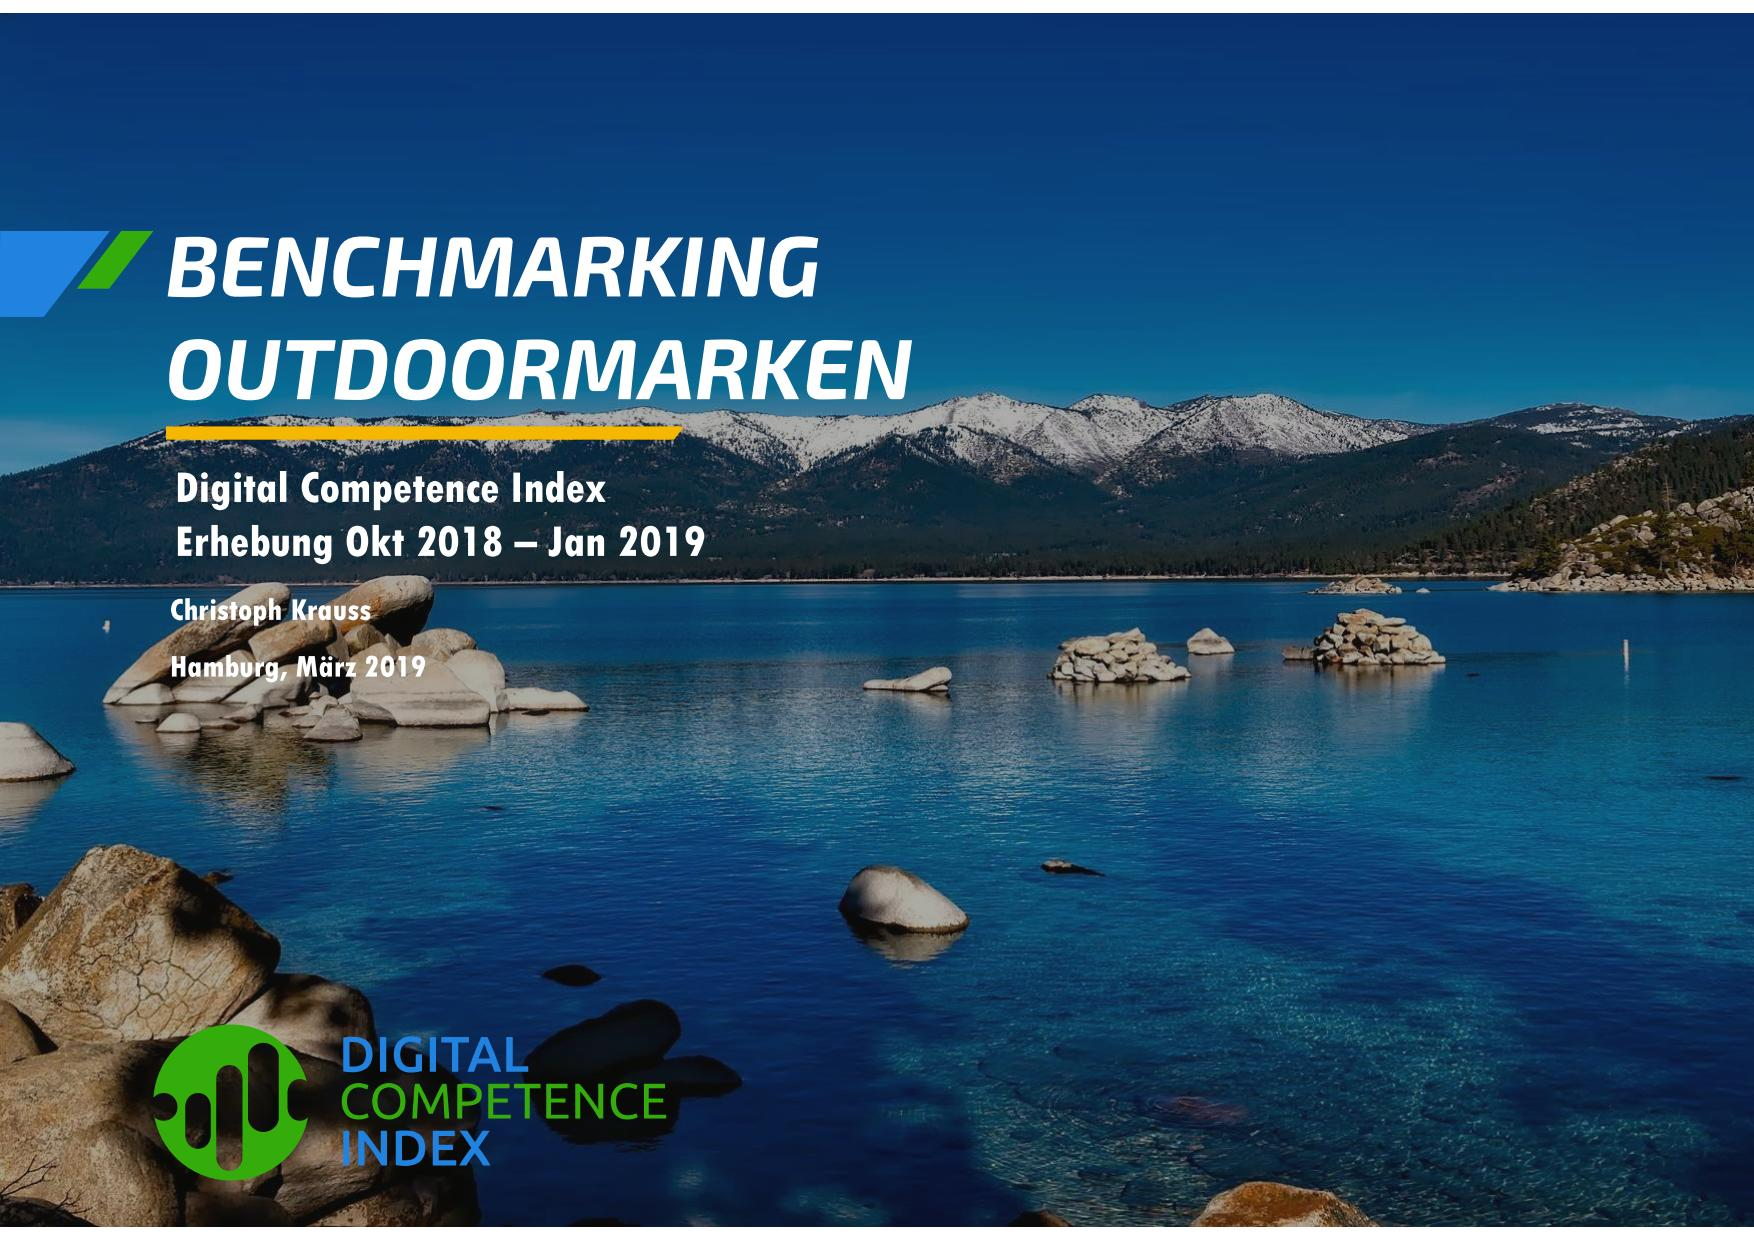 Digitale Vermarktung marketing dci outdoor jack wolfskin schöffel vaude mammut the north face benchex digital competence index